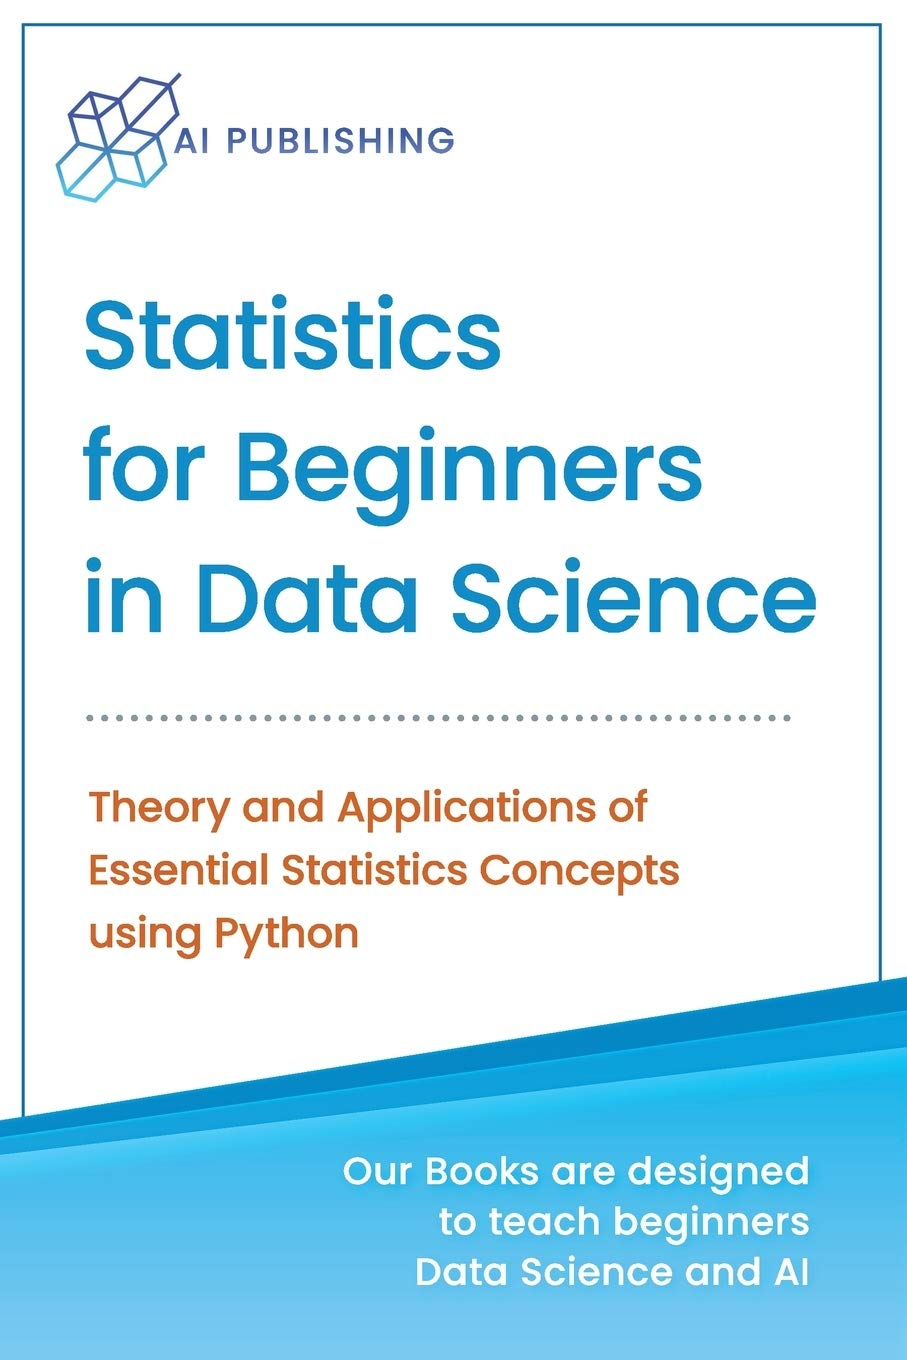 Statistics for Beginners in Data Science: Theory and Applications of Essential Statistics Concepts using Python (Machine Learning & Data Science for Beginners)